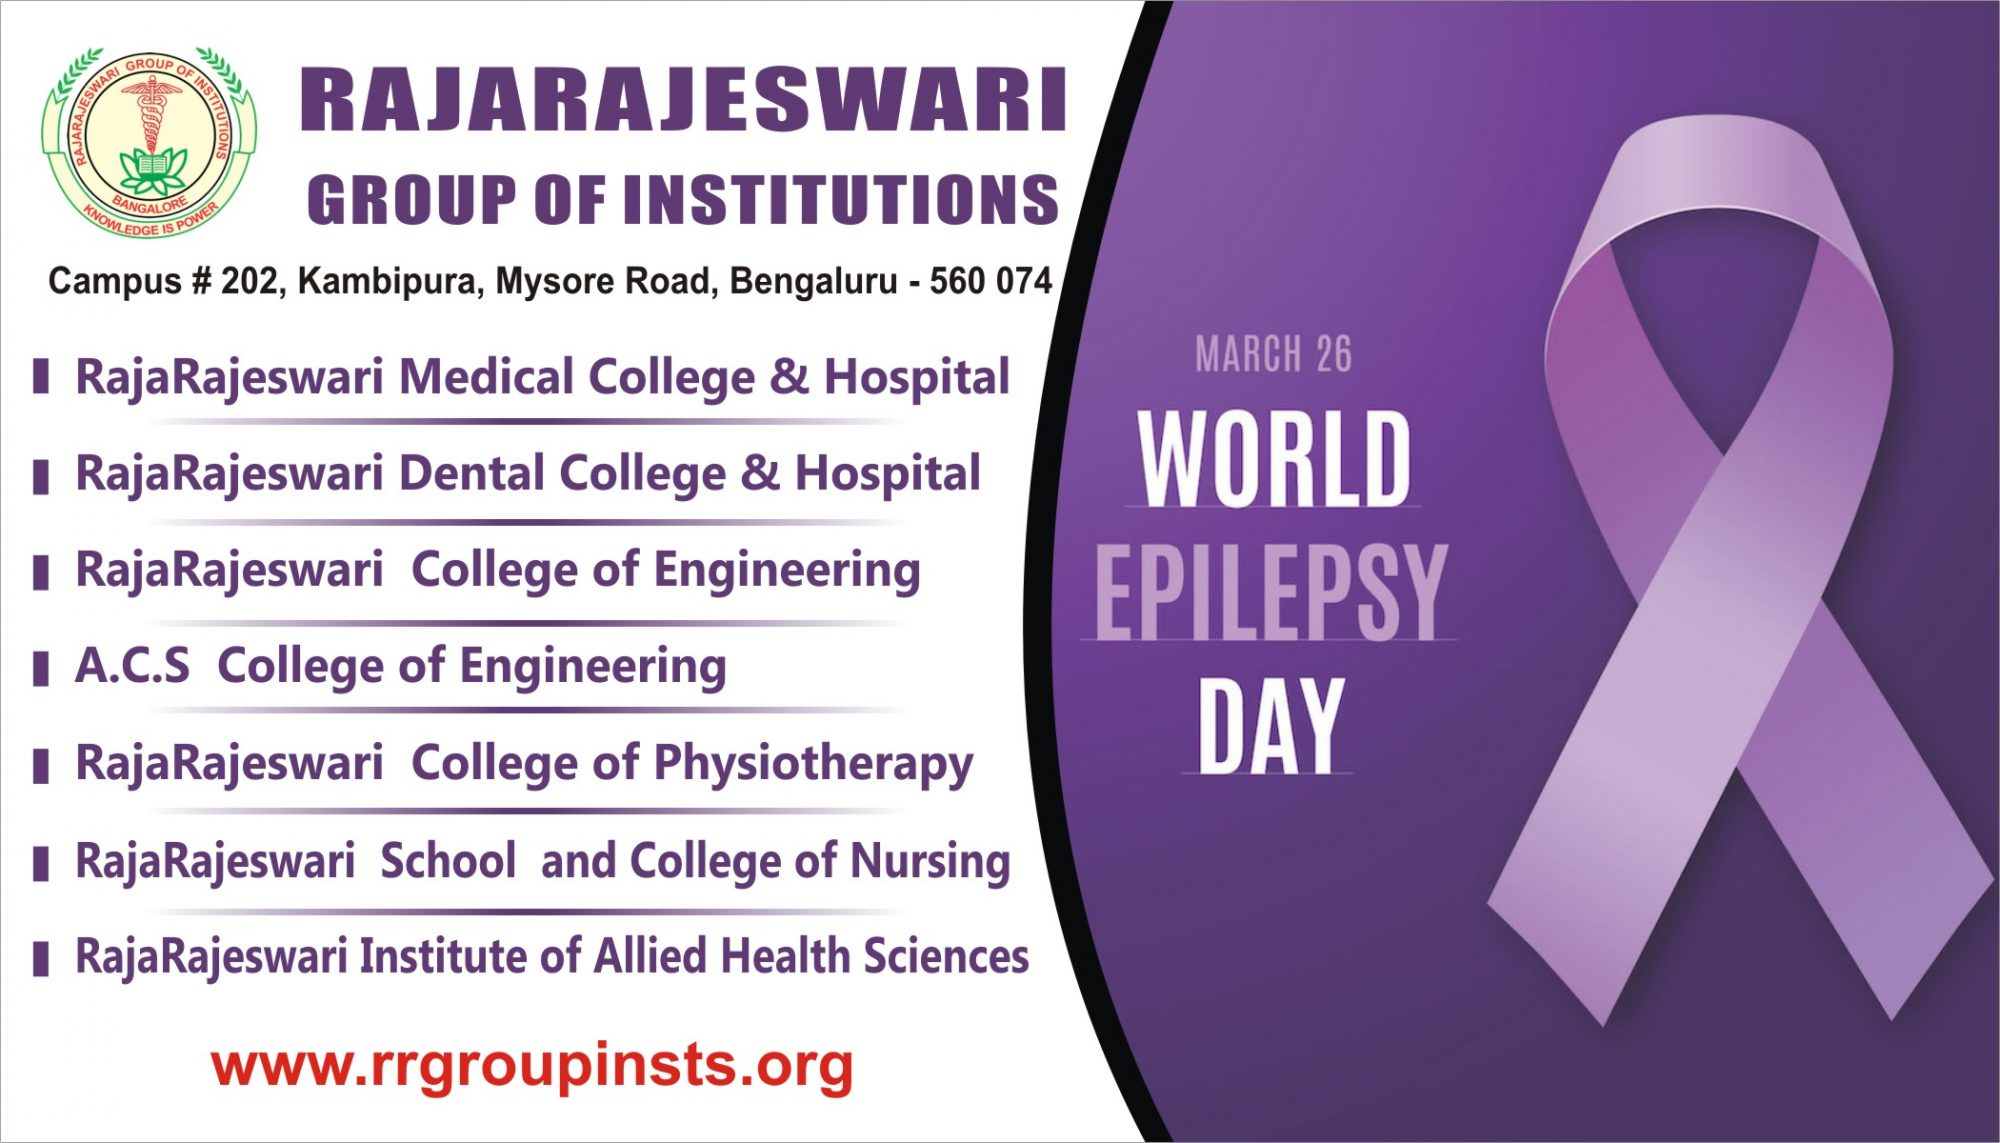 World Epilepsy Day 2021